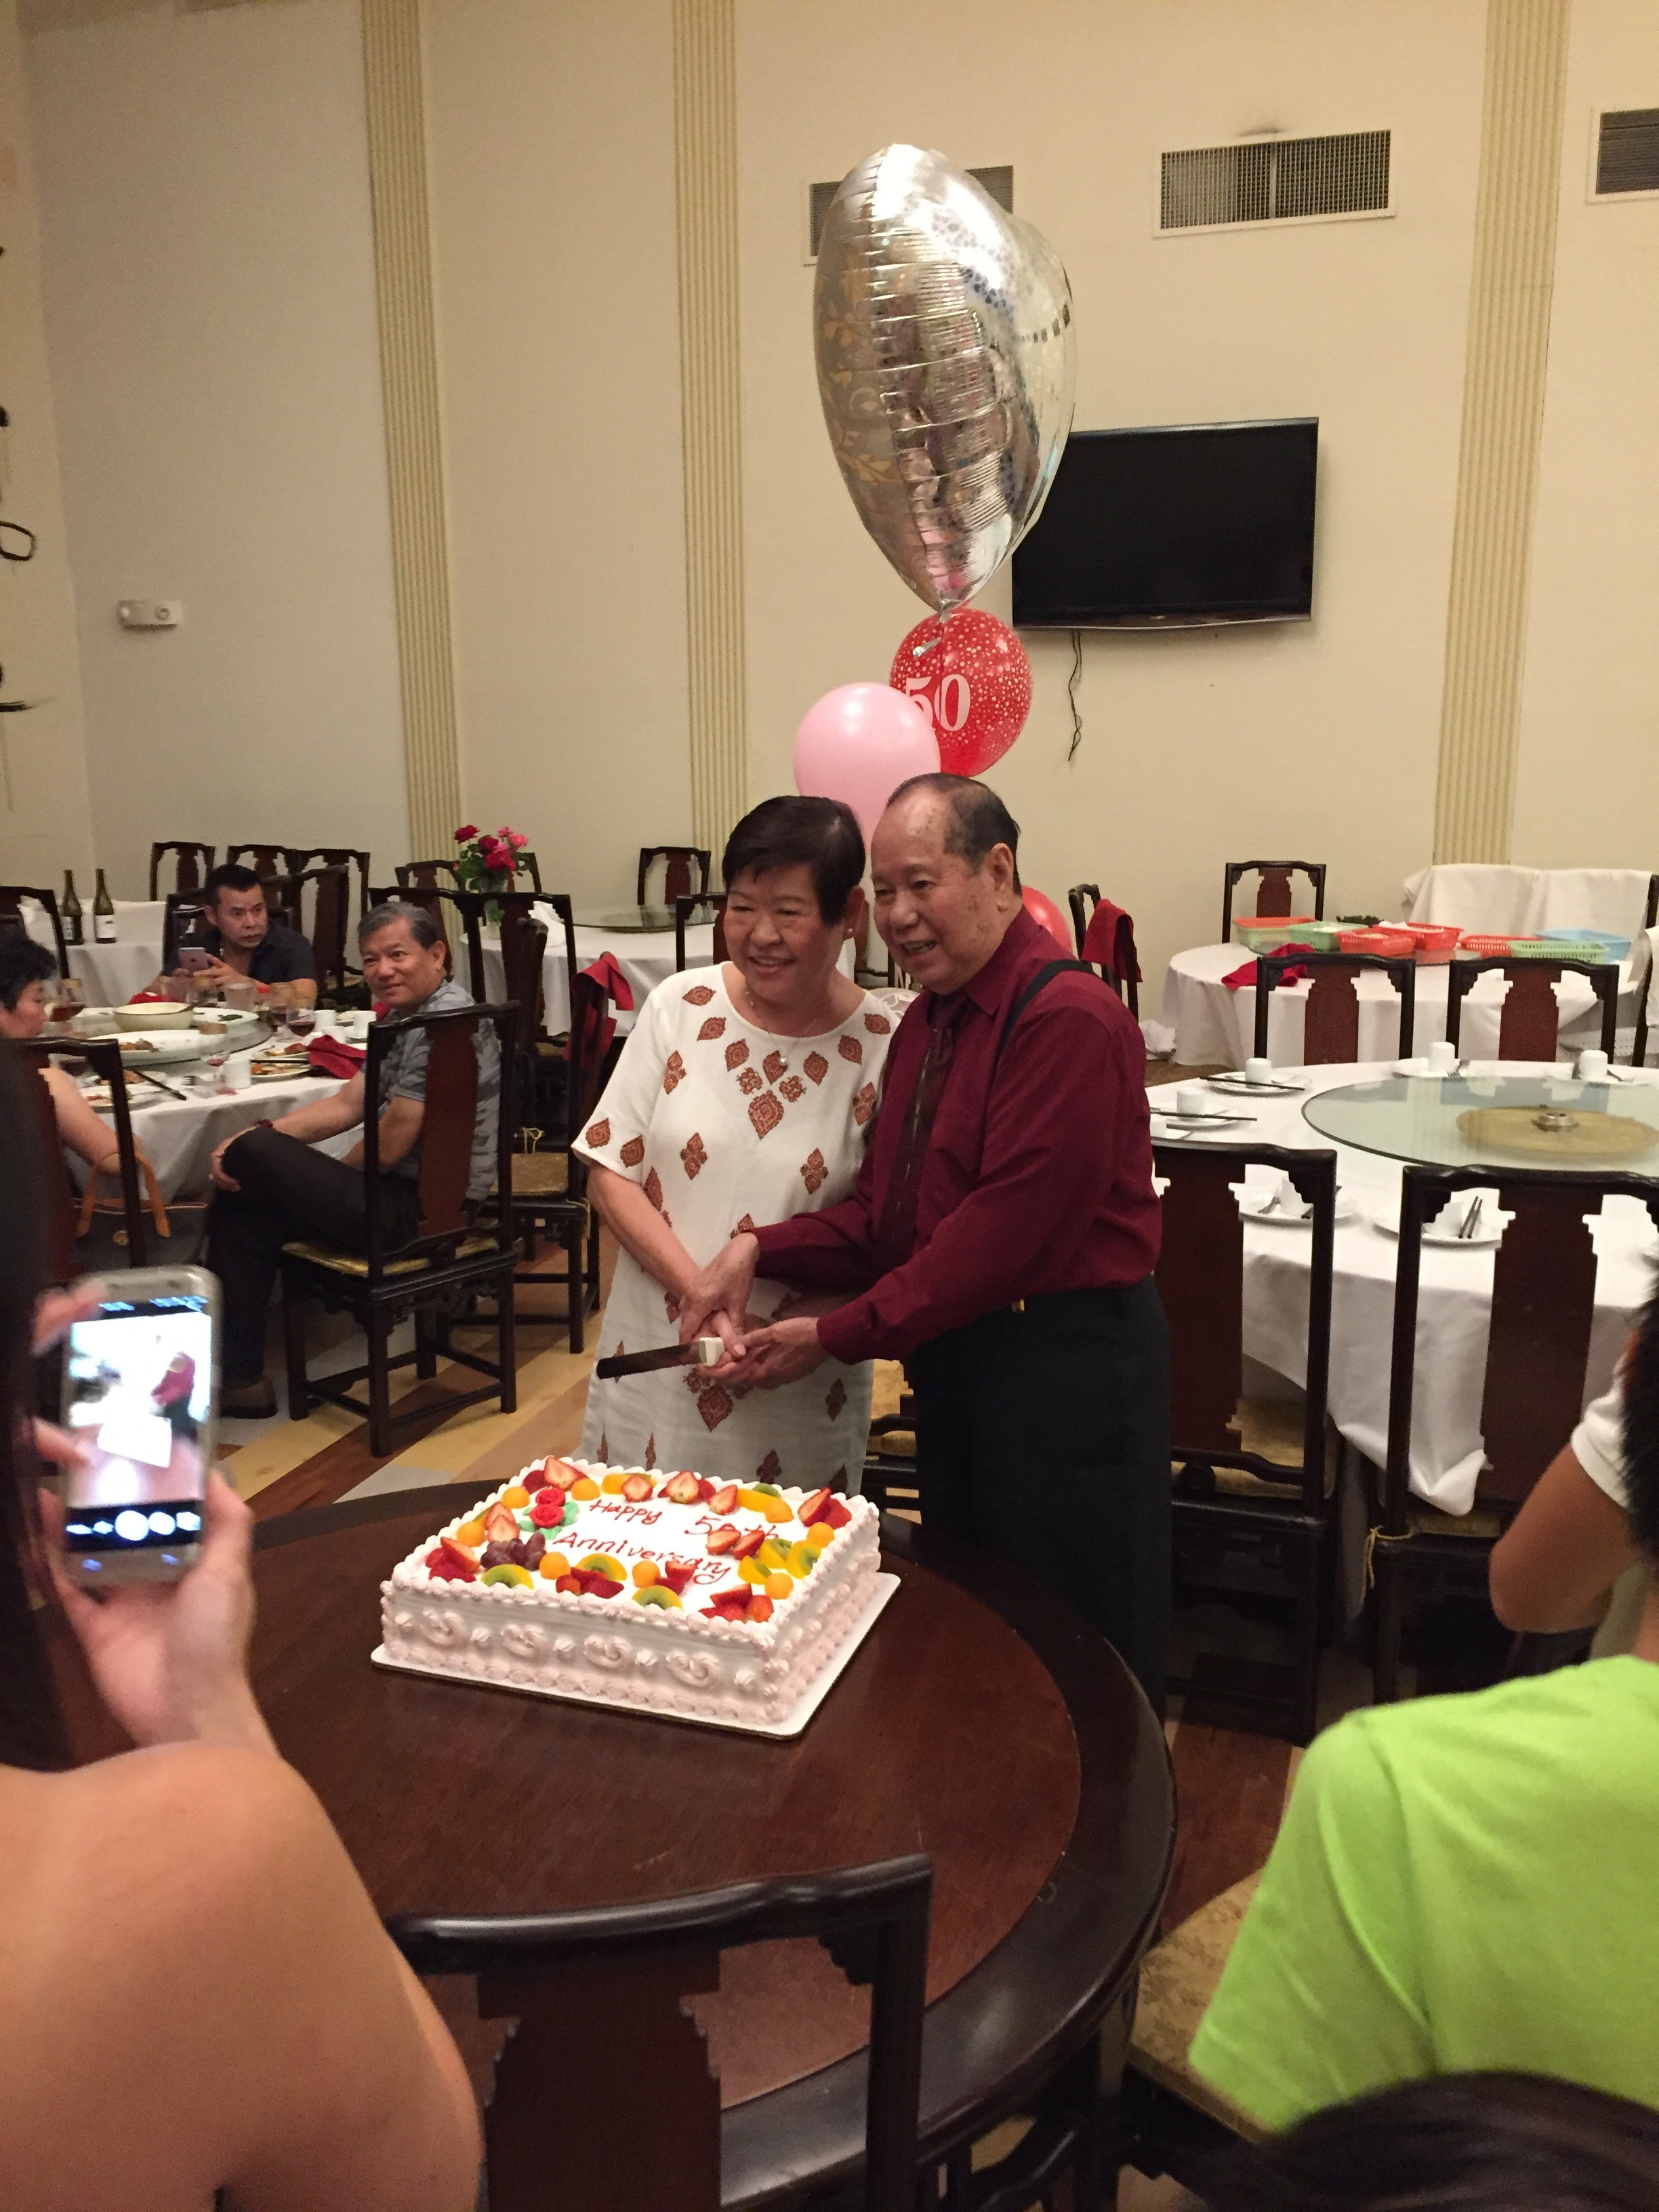 Lam and Ann Lo celebrate their 50th wedding anniversary in 2016. Later in the series, Lam shares advice for a long and happy marriage.